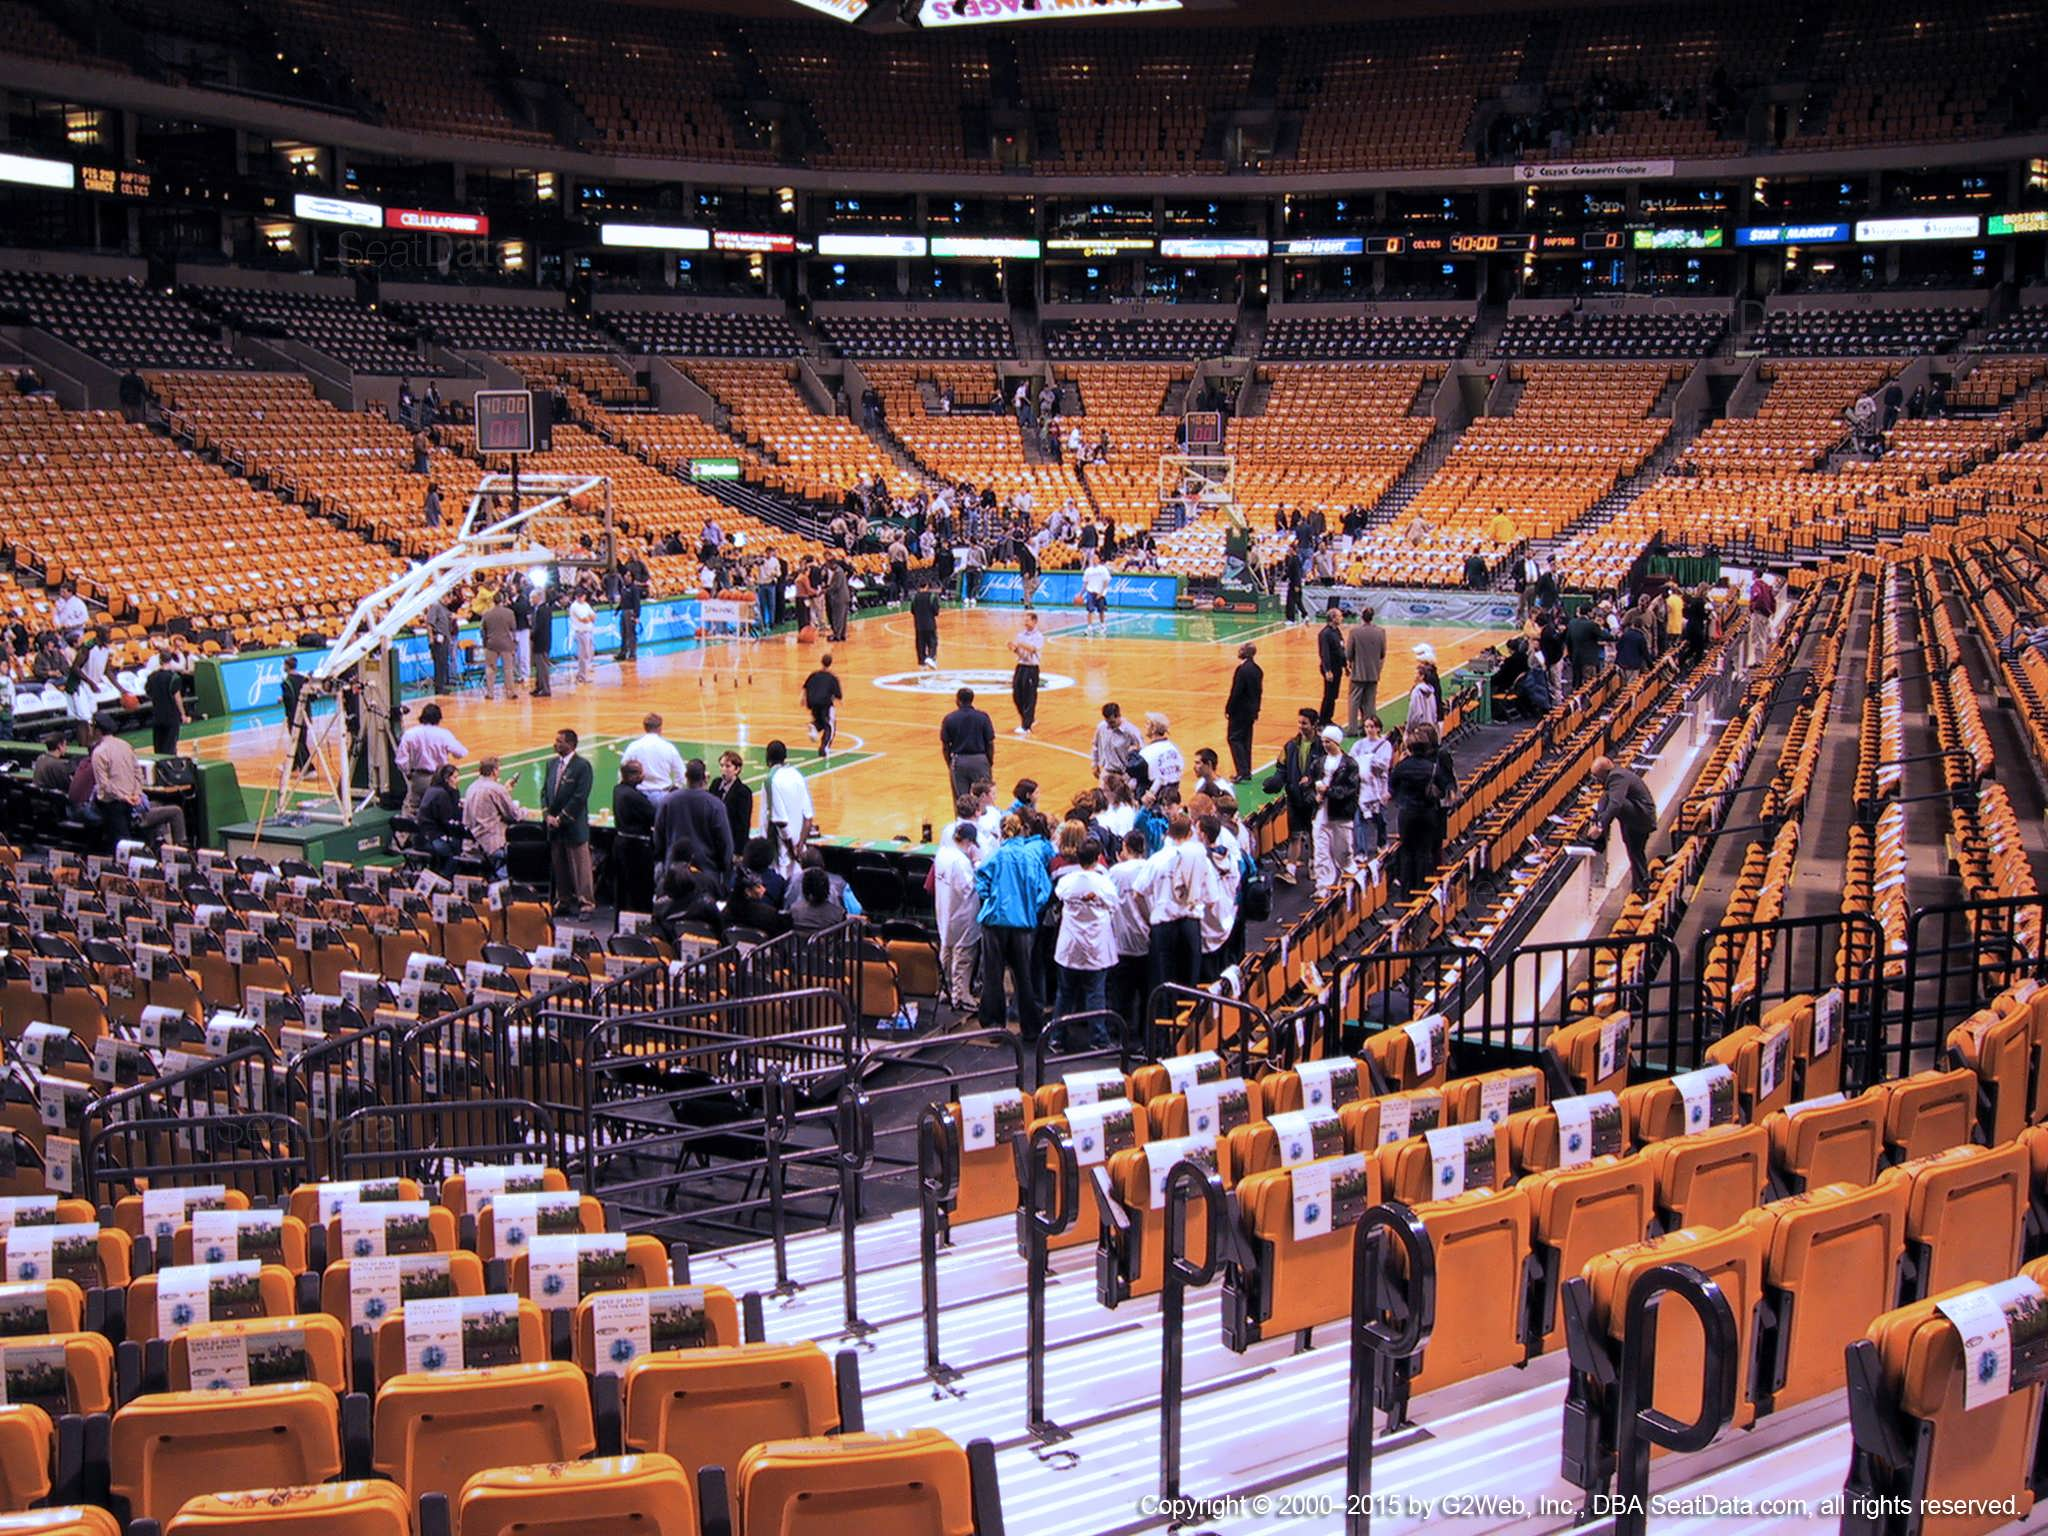 boston celtics seat view for td garden loge 16 - Td Garden Seating